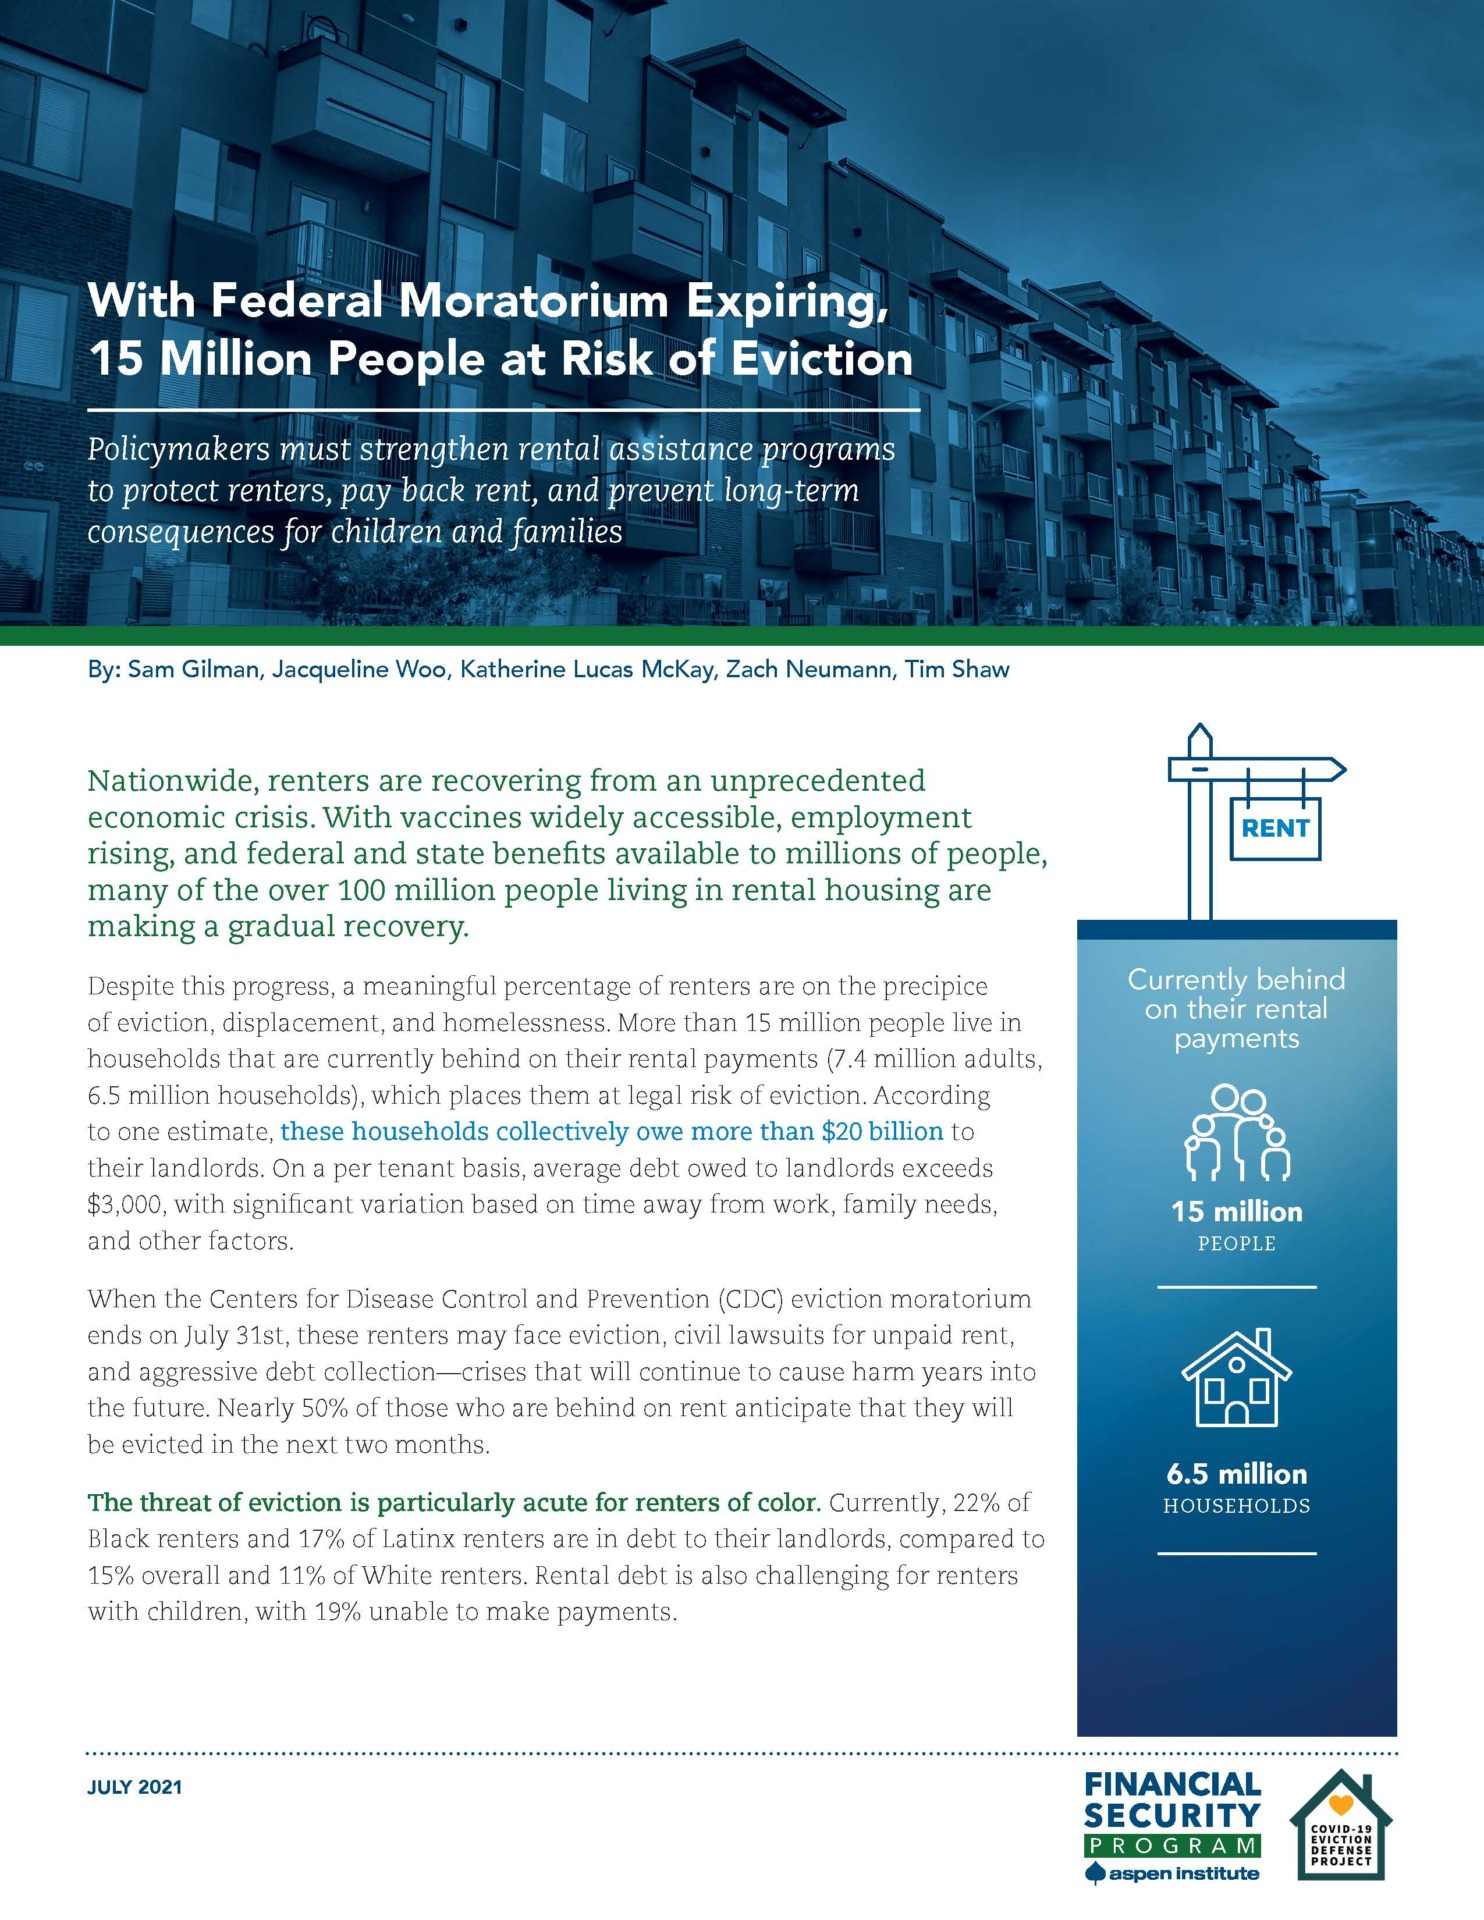 With Federal Moratorium Expiring, 15 Million People at Risk of Eviction